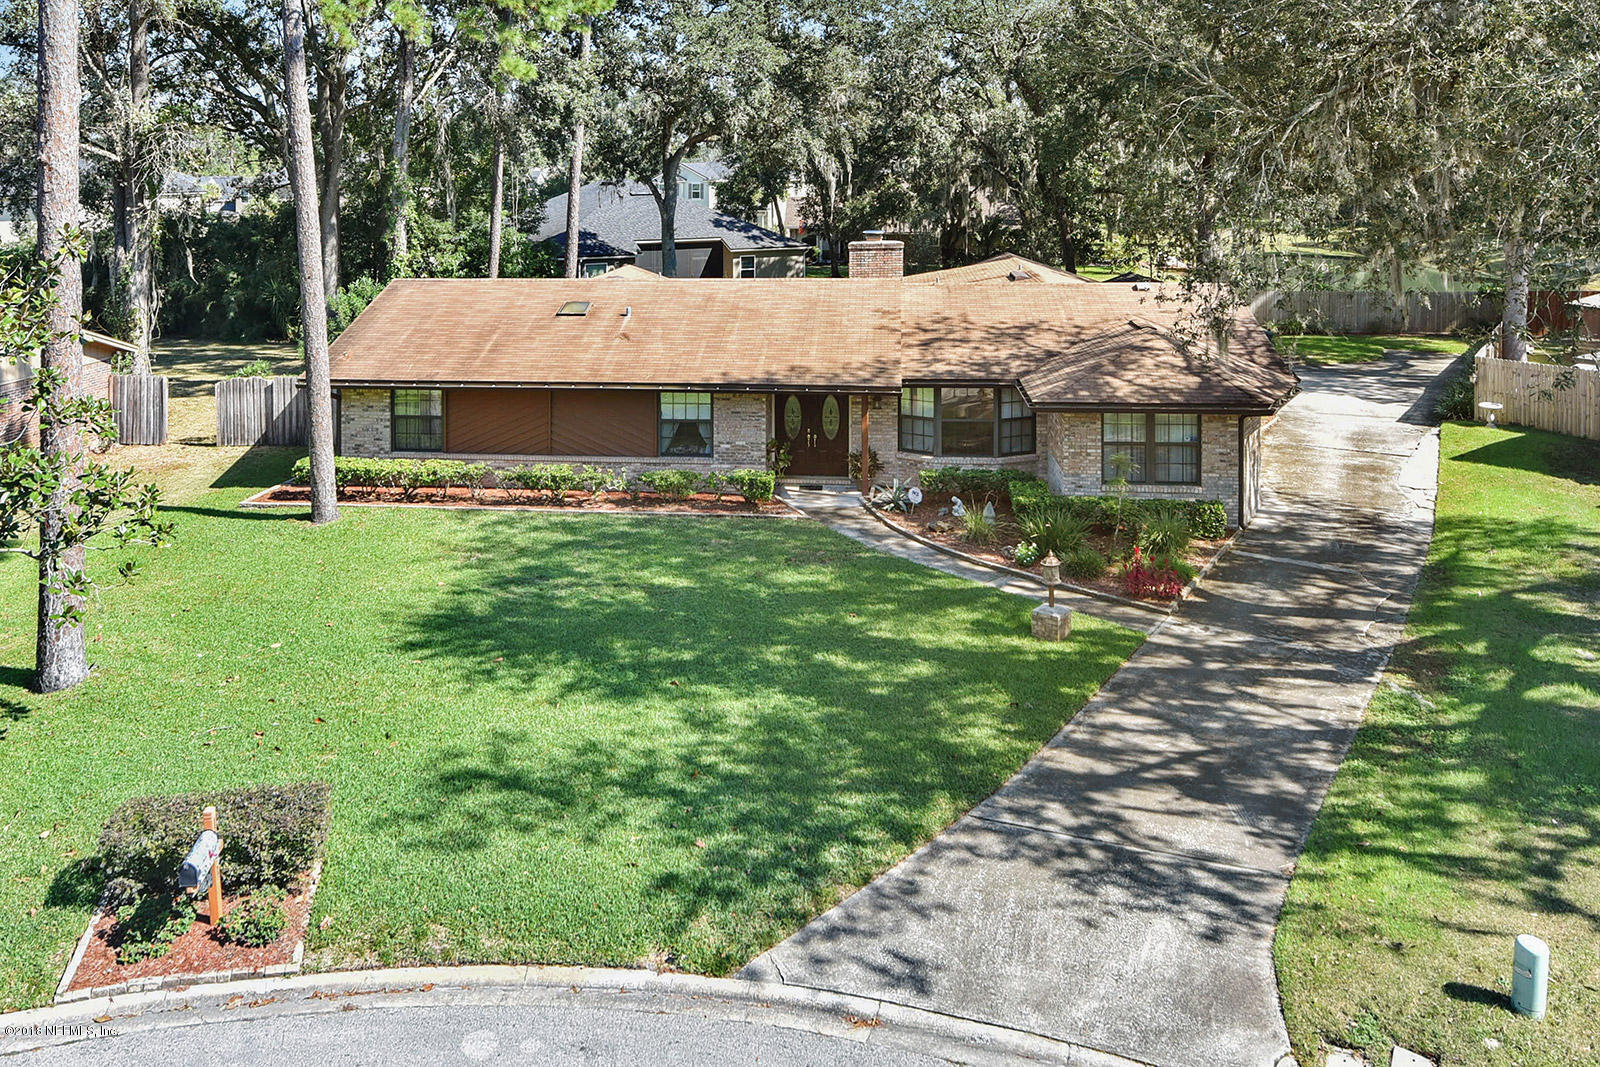 11831 LORETTO WOODS, JACKSONVILLE, FLORIDA 32223, 4 Bedrooms Bedrooms, ,2 BathroomsBathrooms,Residential - single family,For sale,LORETTO WOODS,965067